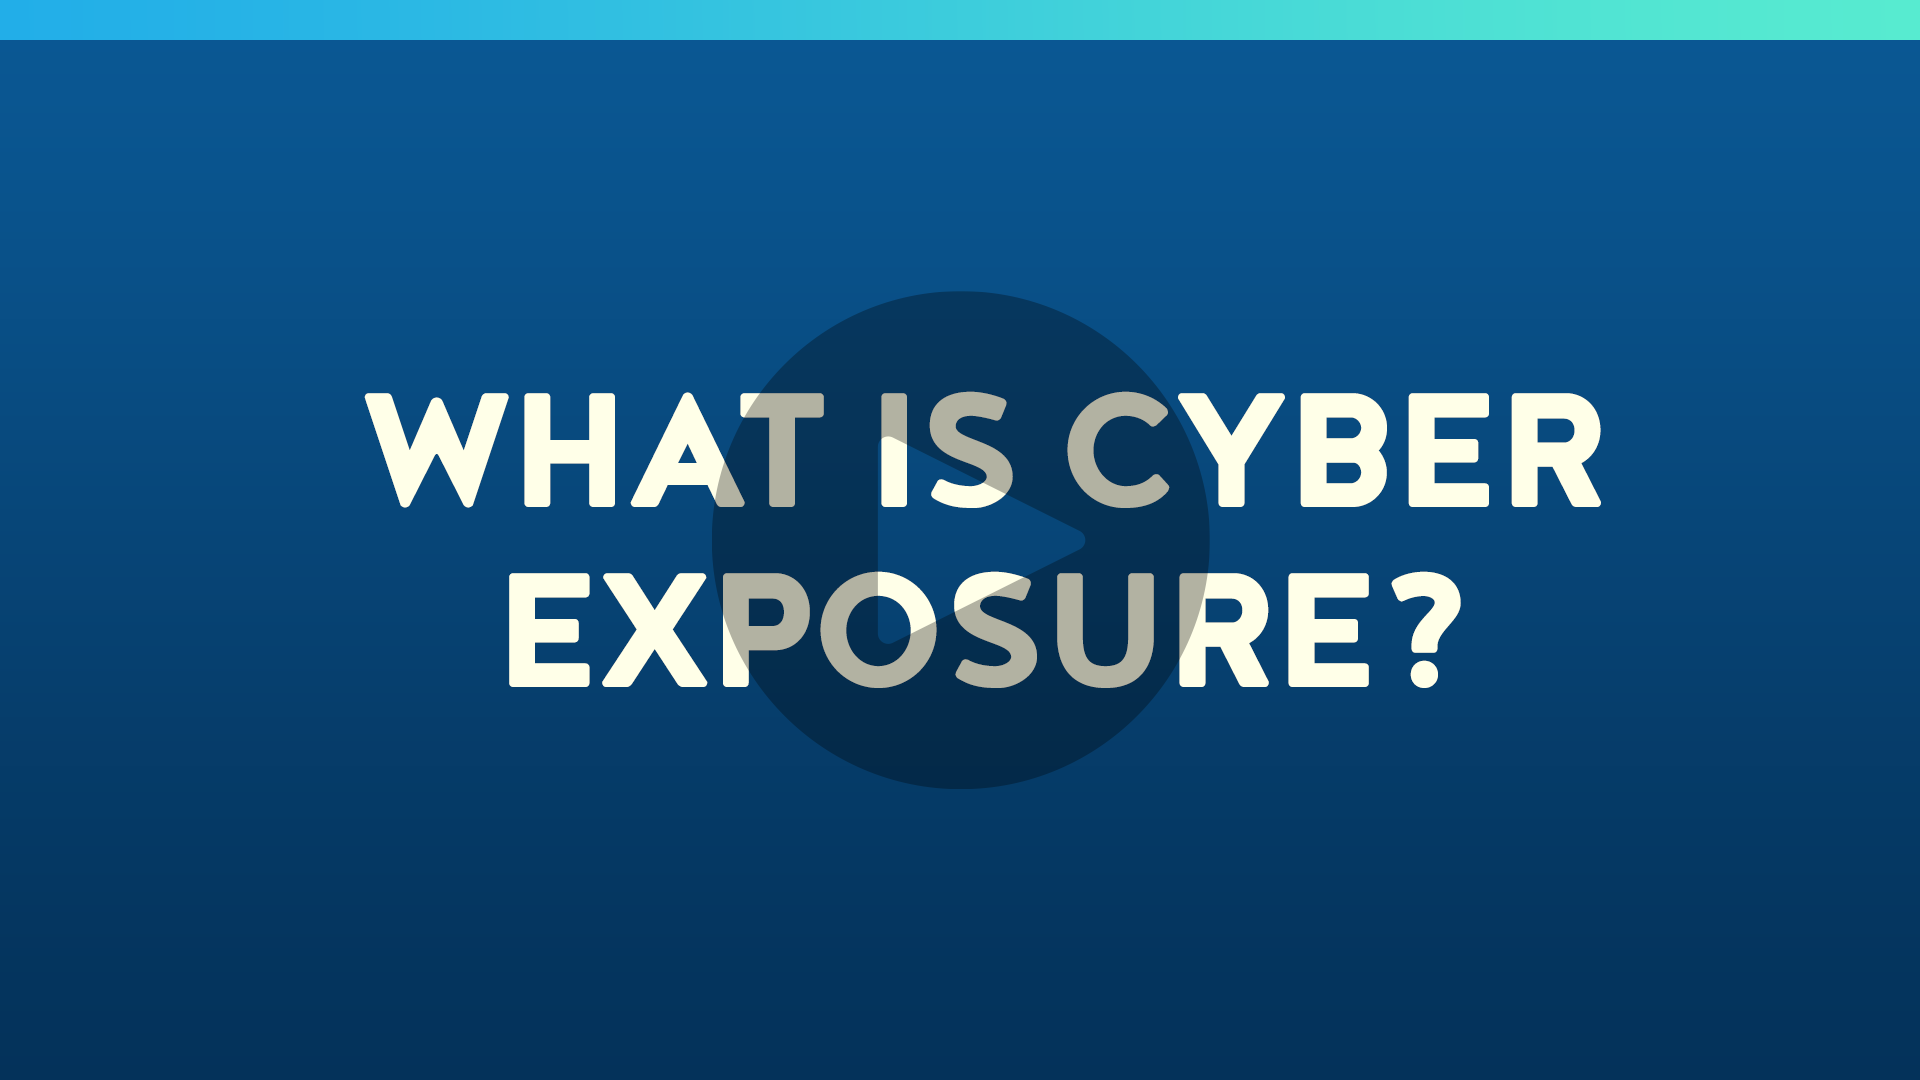 What is Cyber Exposure